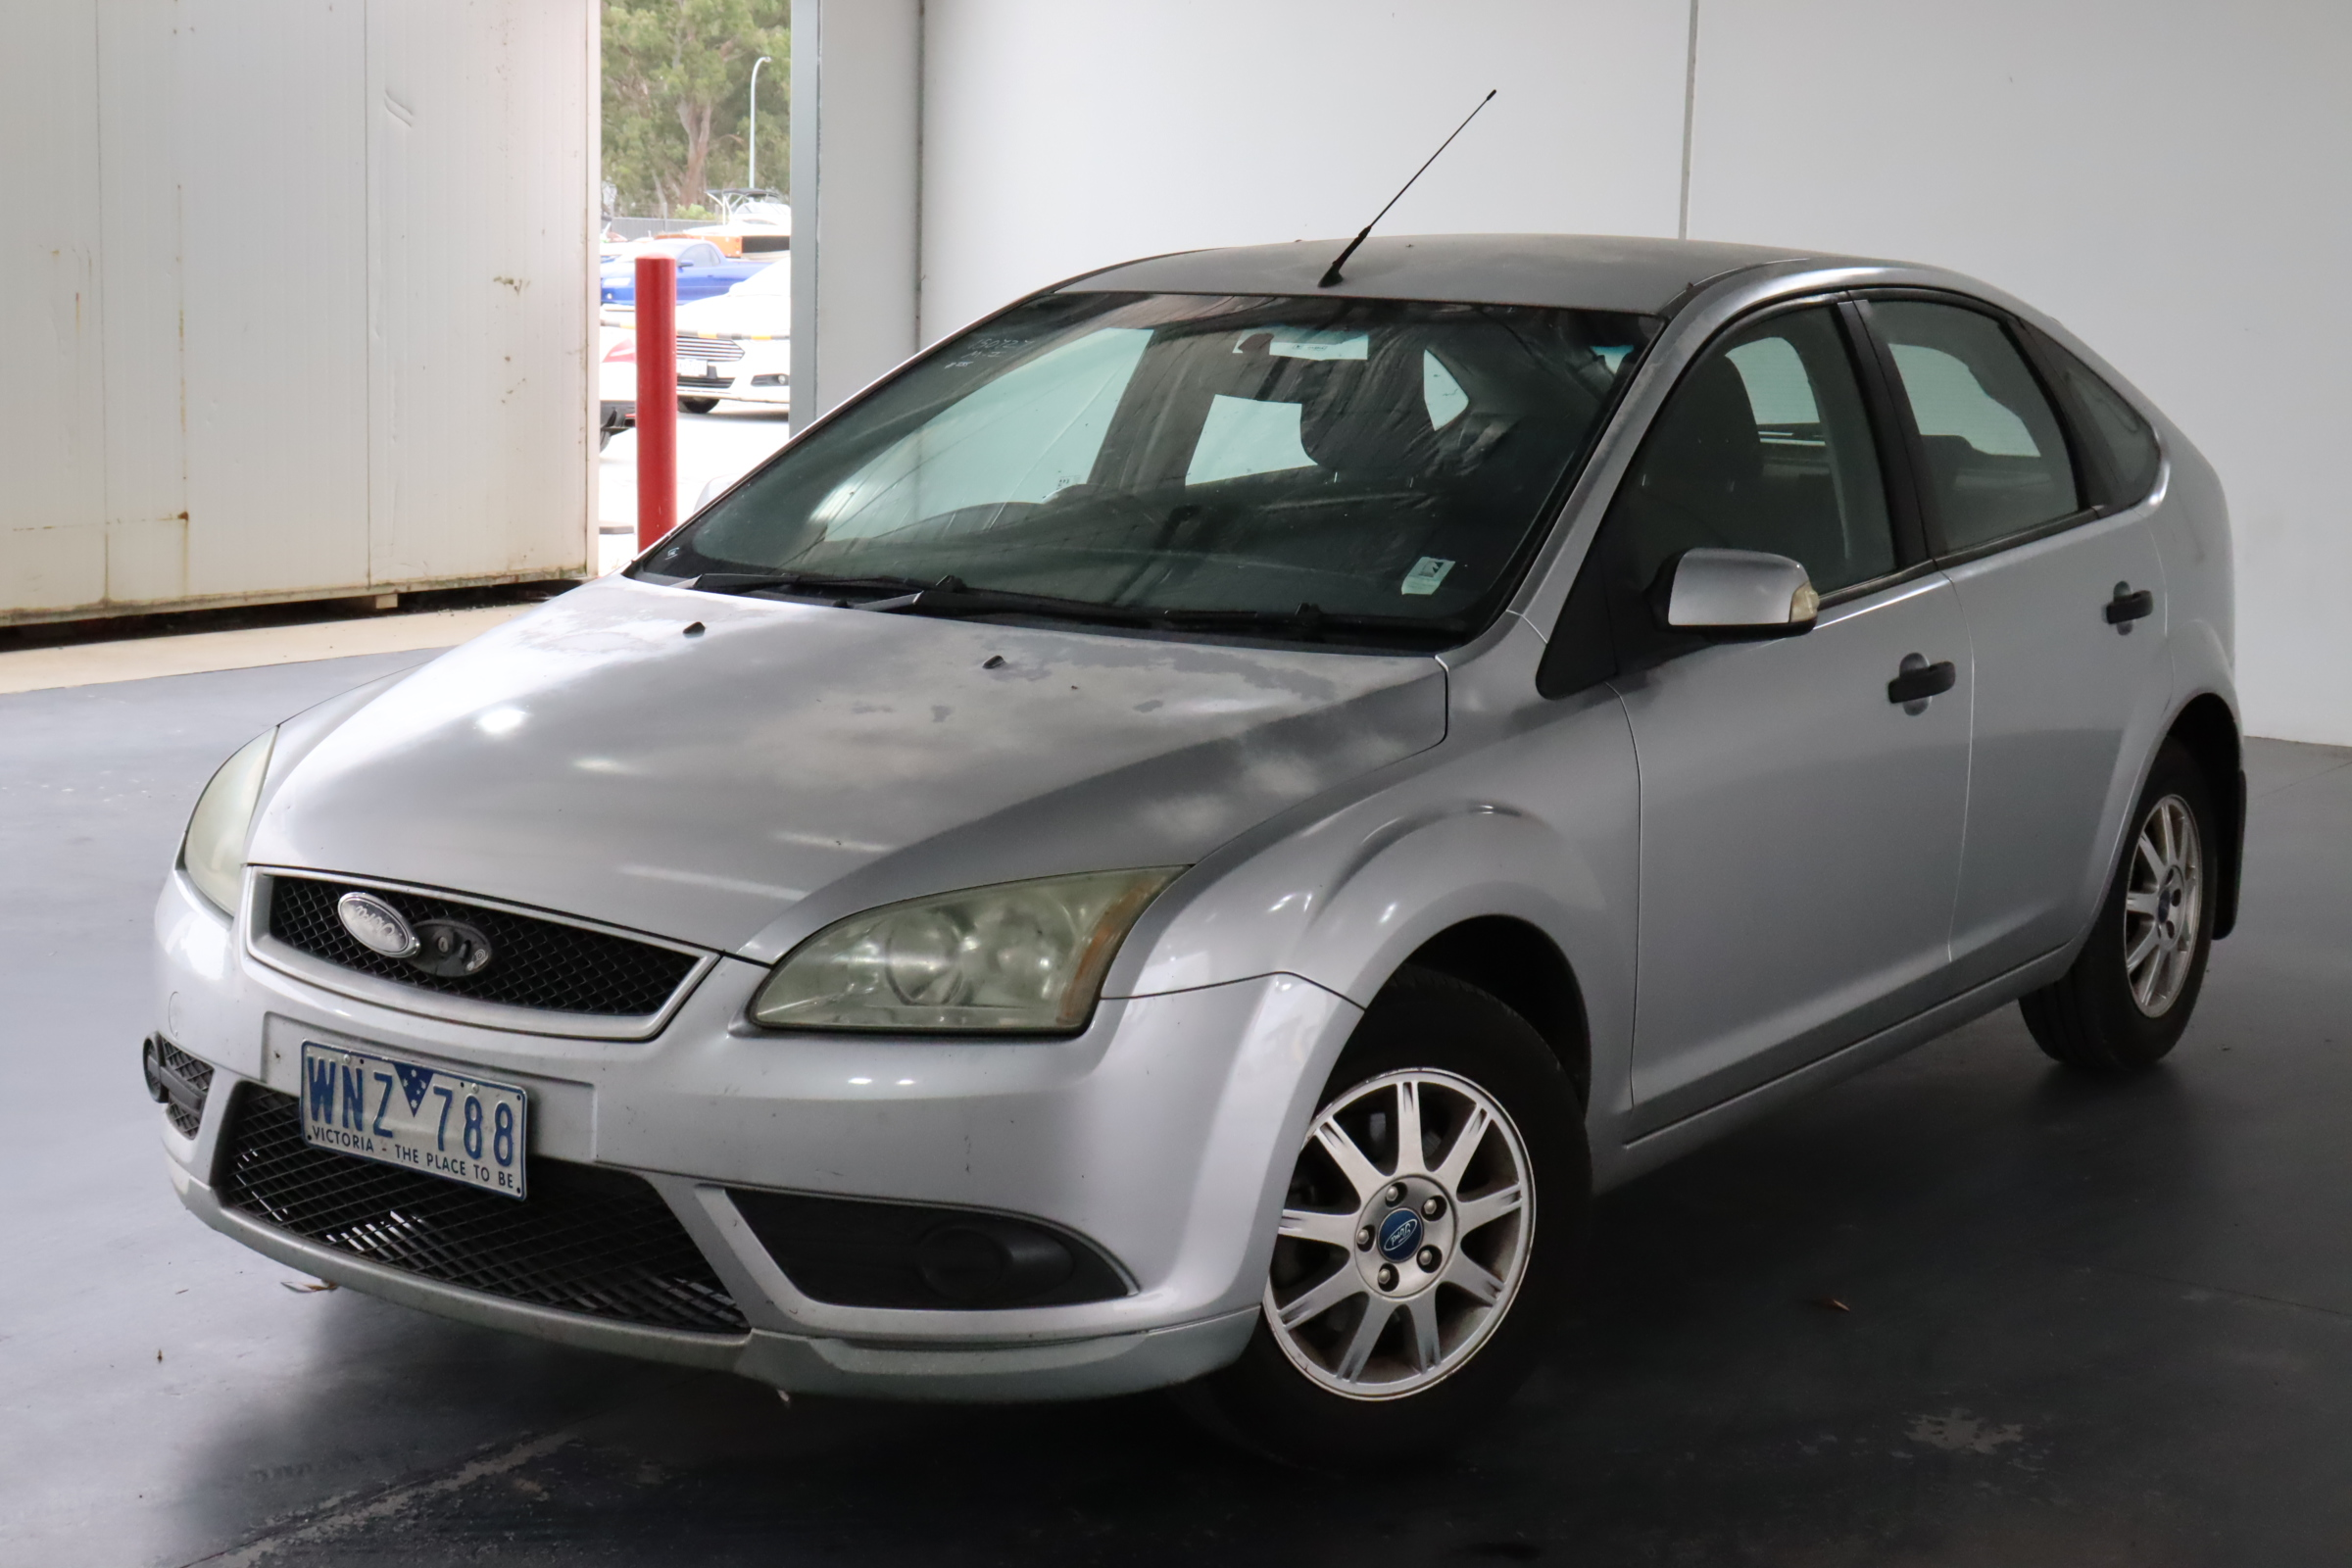 2008 Ford Focus CL LT Automatic Hatchback